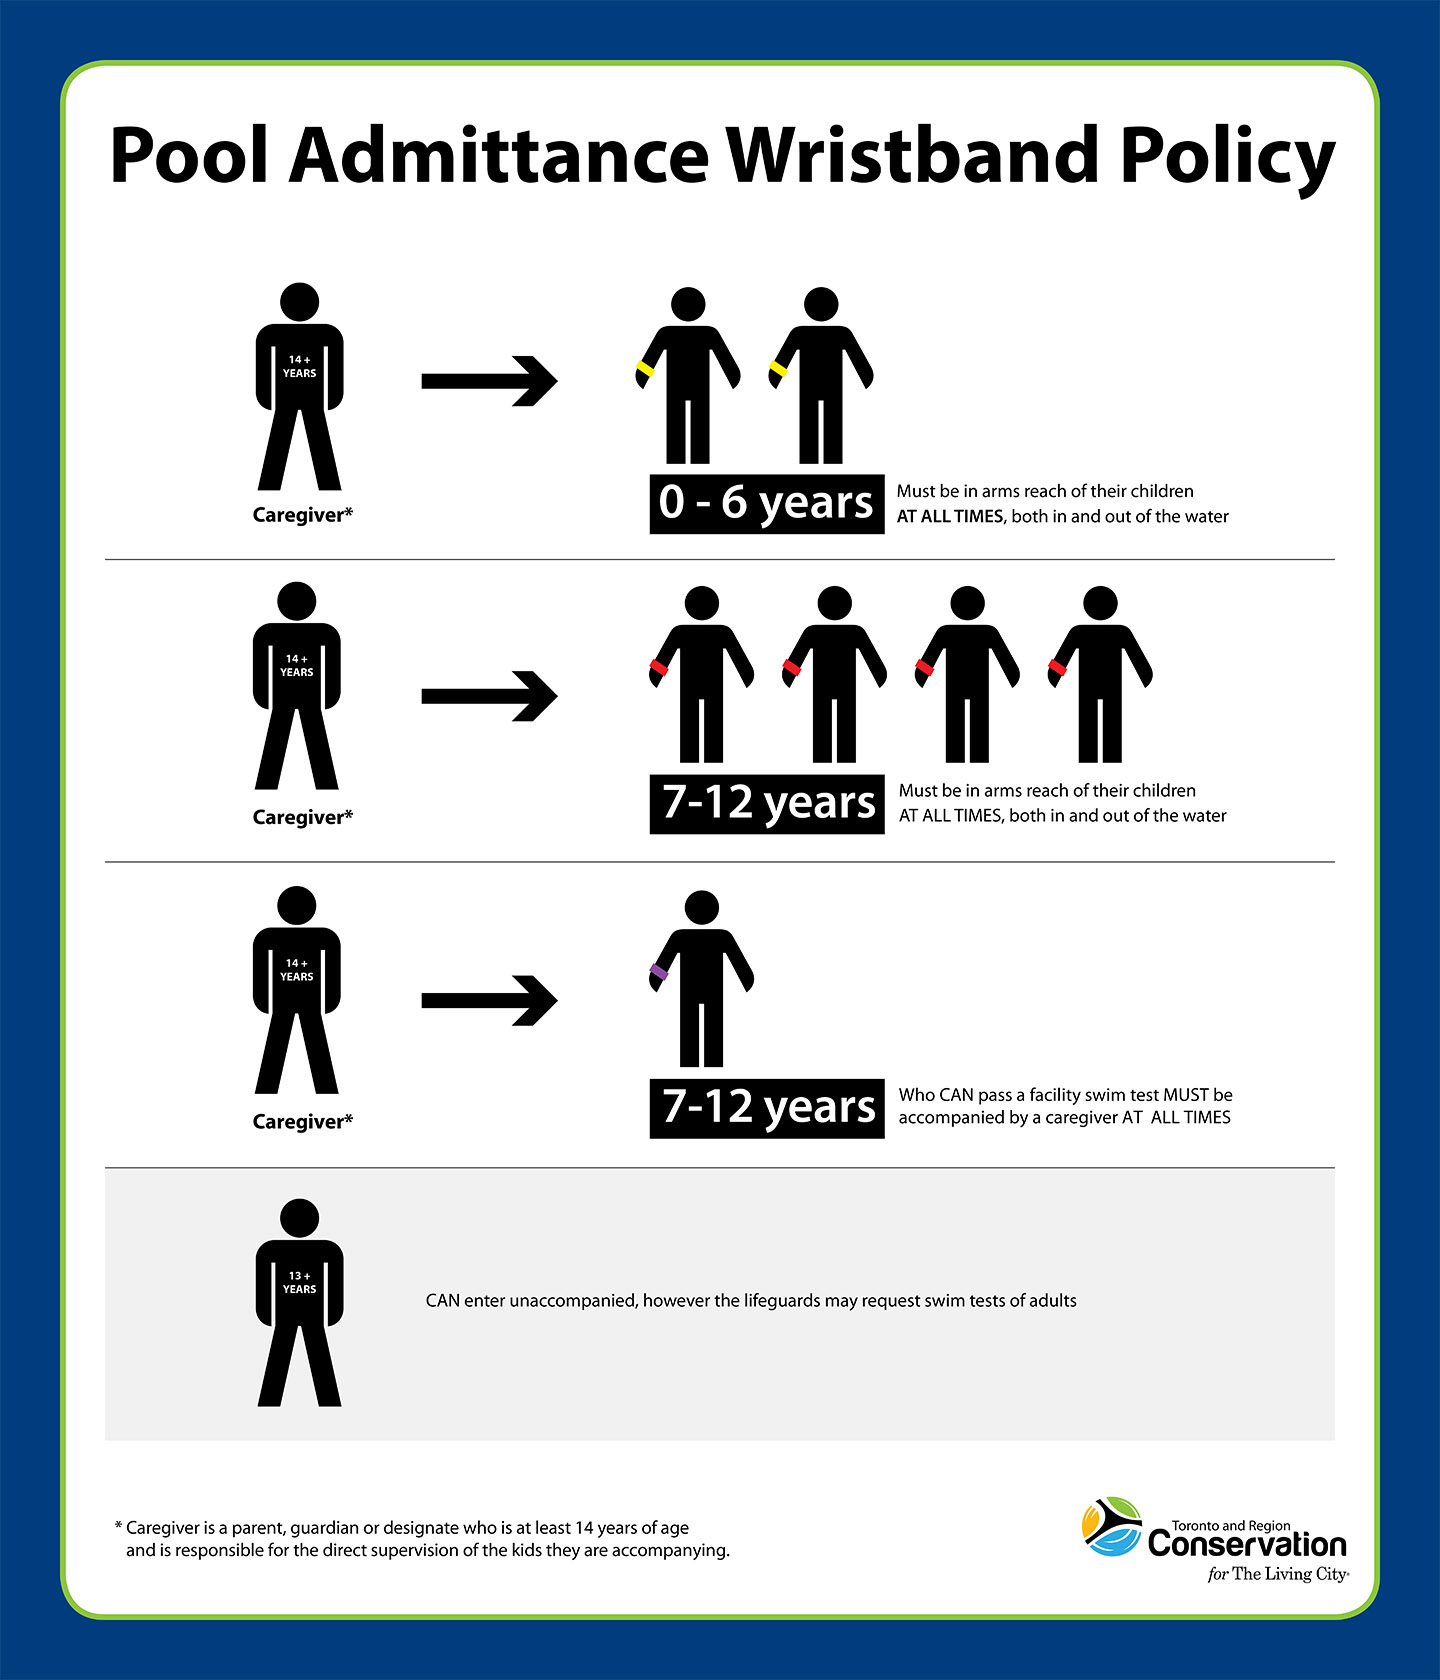 TRCA swimming pool admittance policy